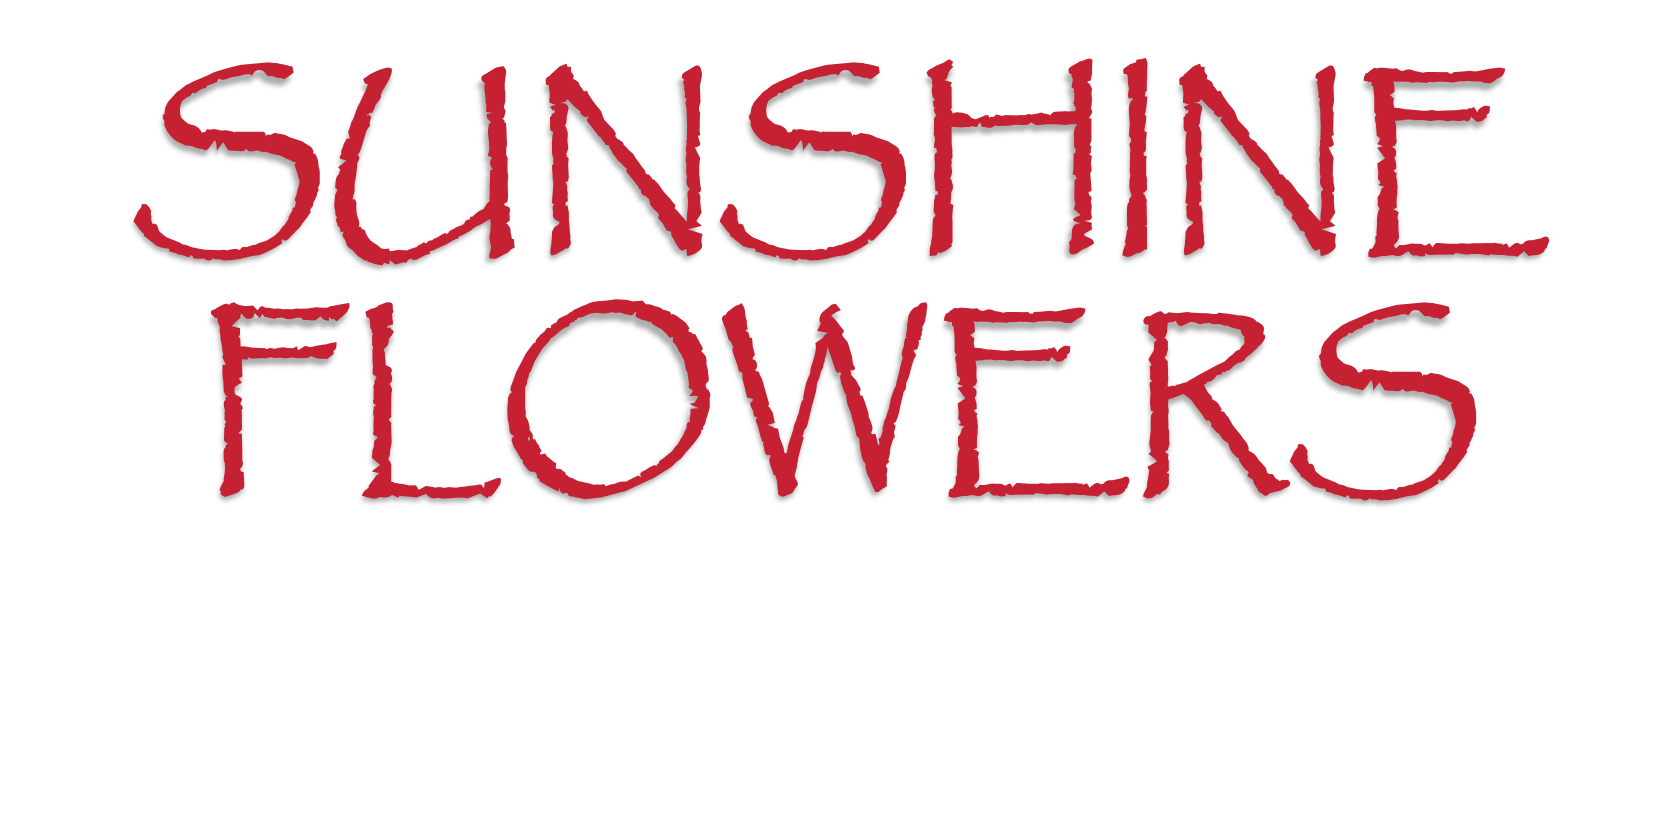 Dallas Florist Flower Delivery By Sunshine Flowers Greenhouse